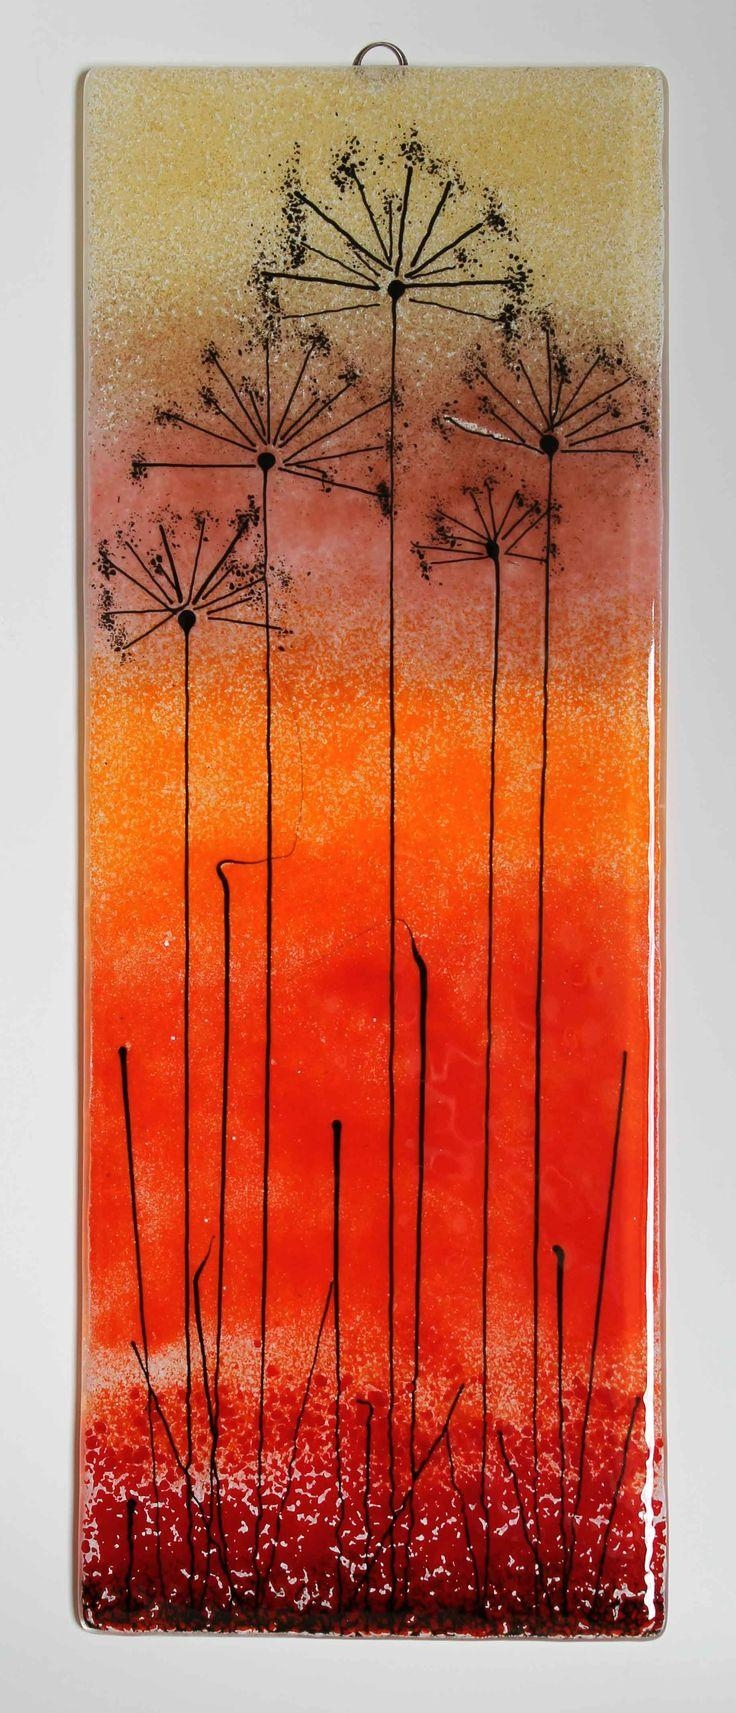 1914 Best Fused Glass – Artsy Fartsy Images On Pinterest | Stained Throughout Fused Glass Flower Wall Art (View 2 of 20)